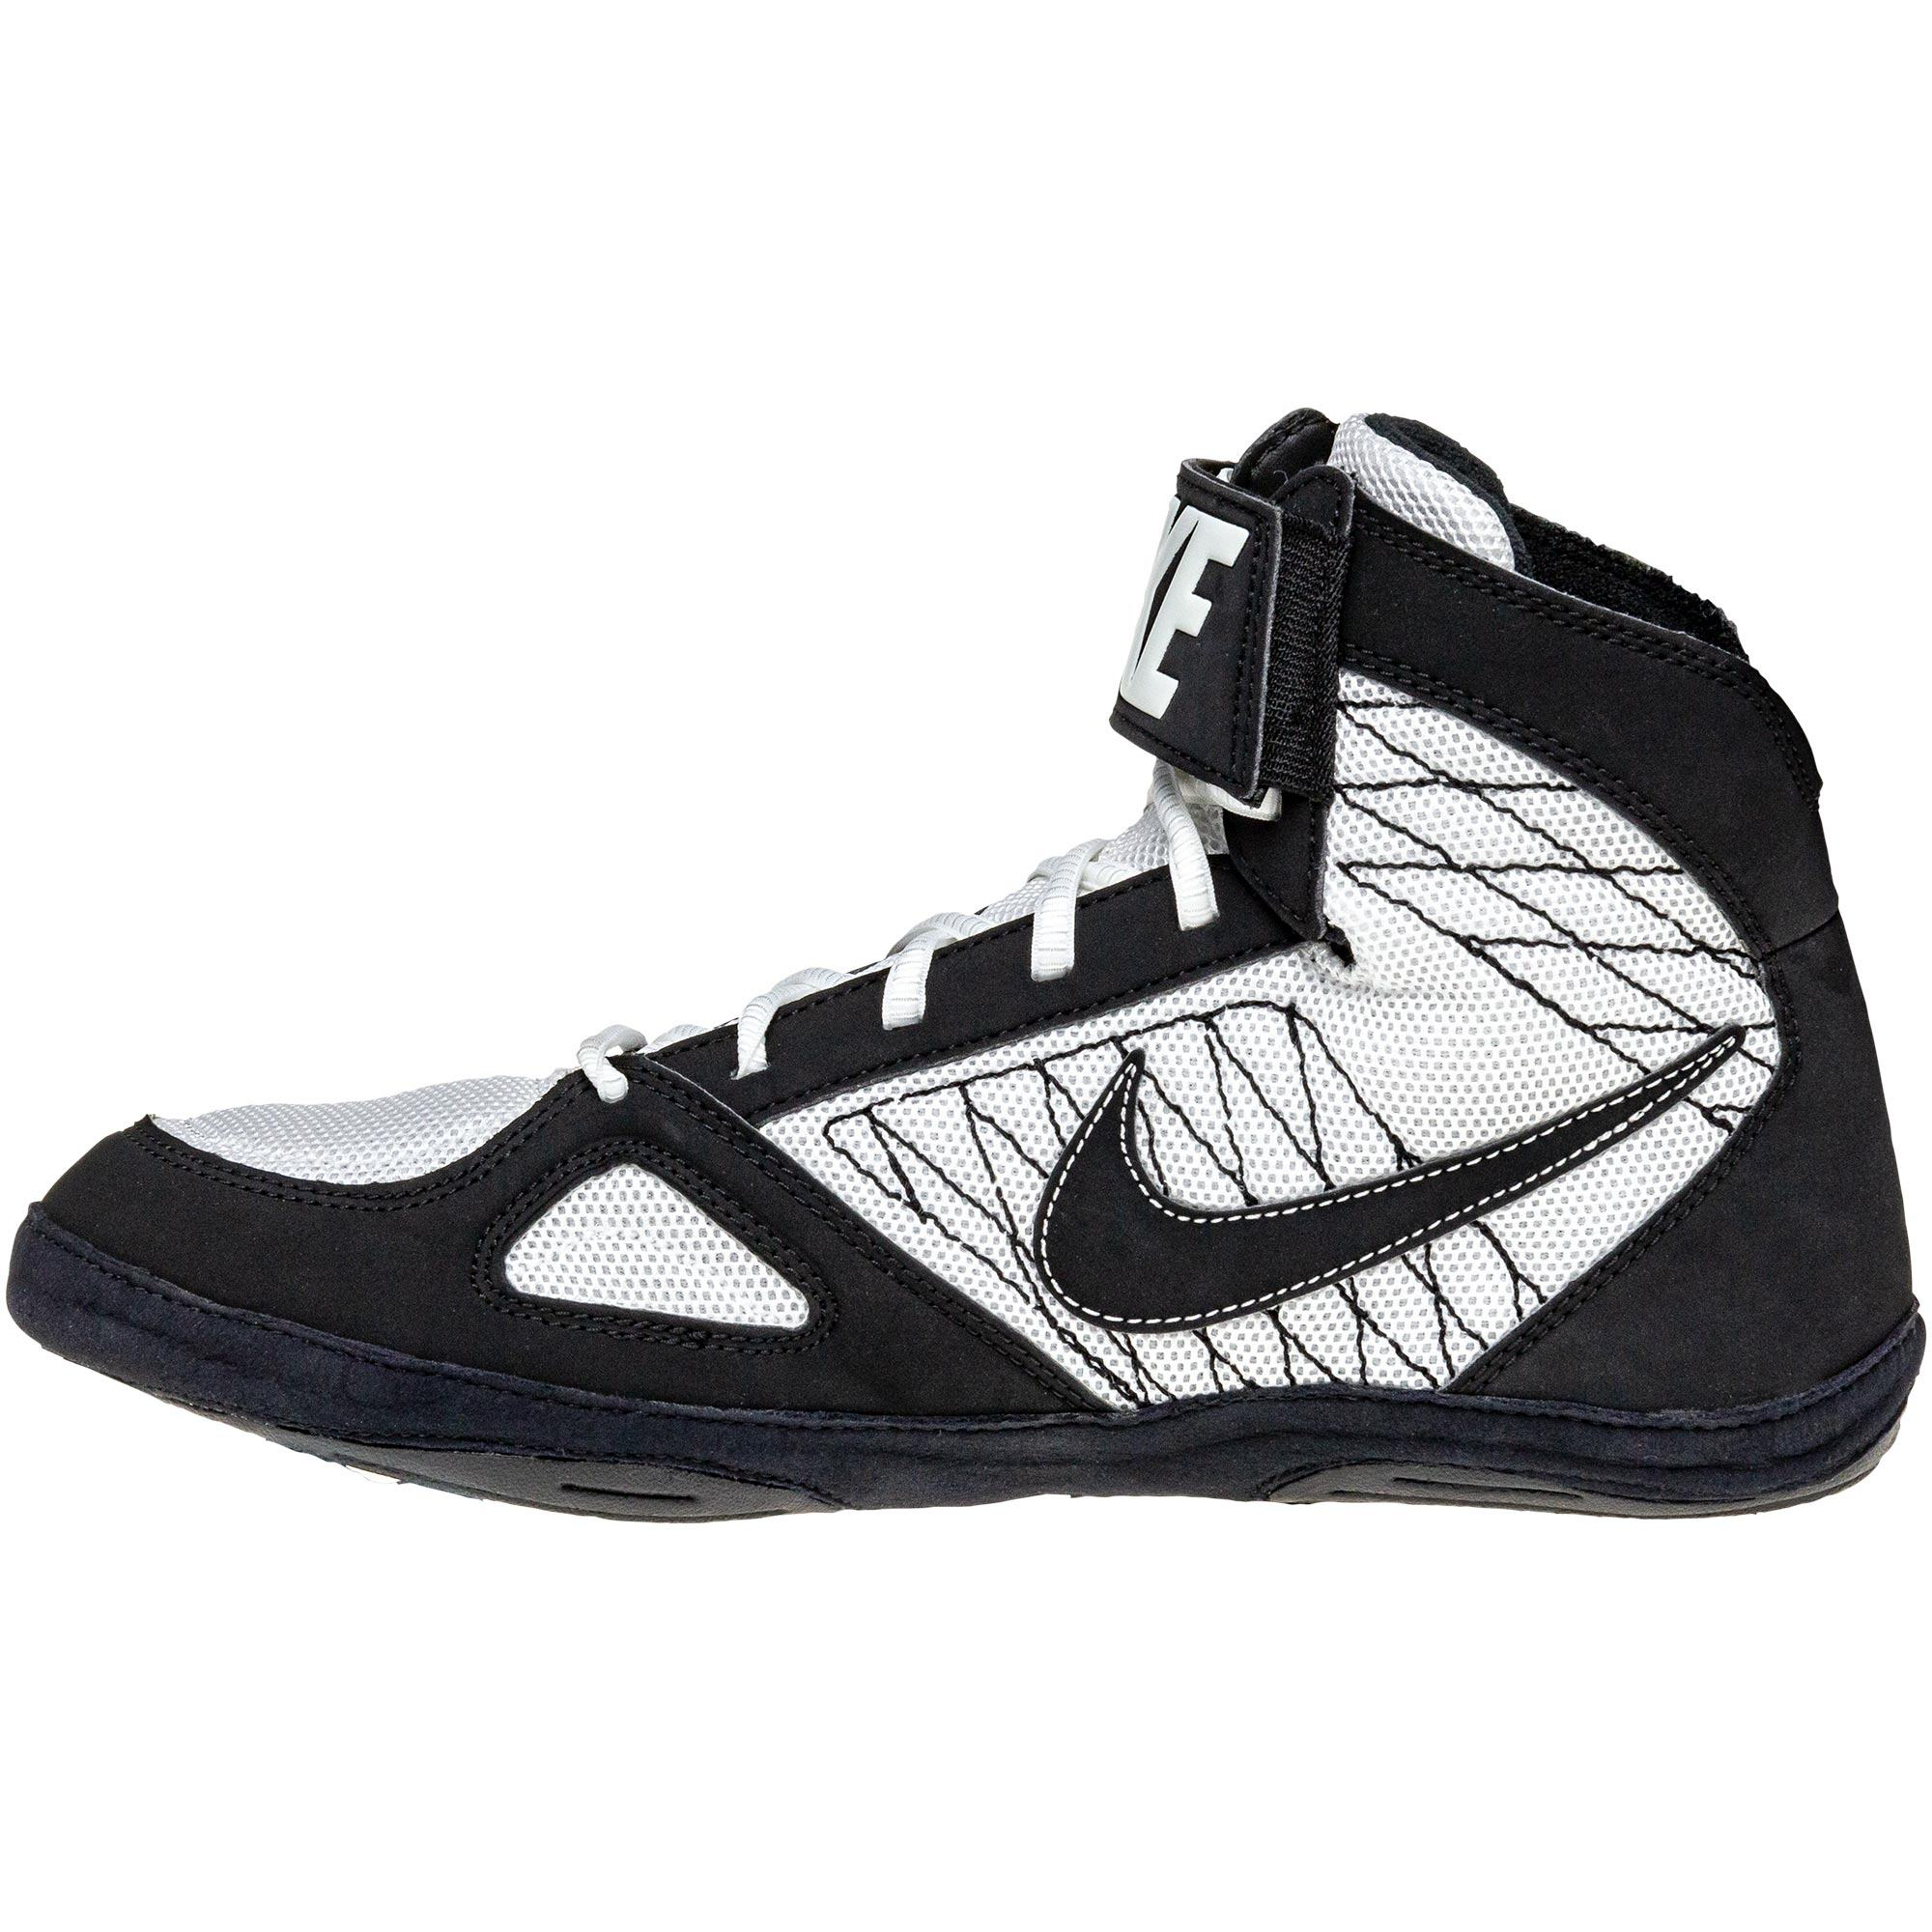 Nike Takedown 4 Ask us a question about this product